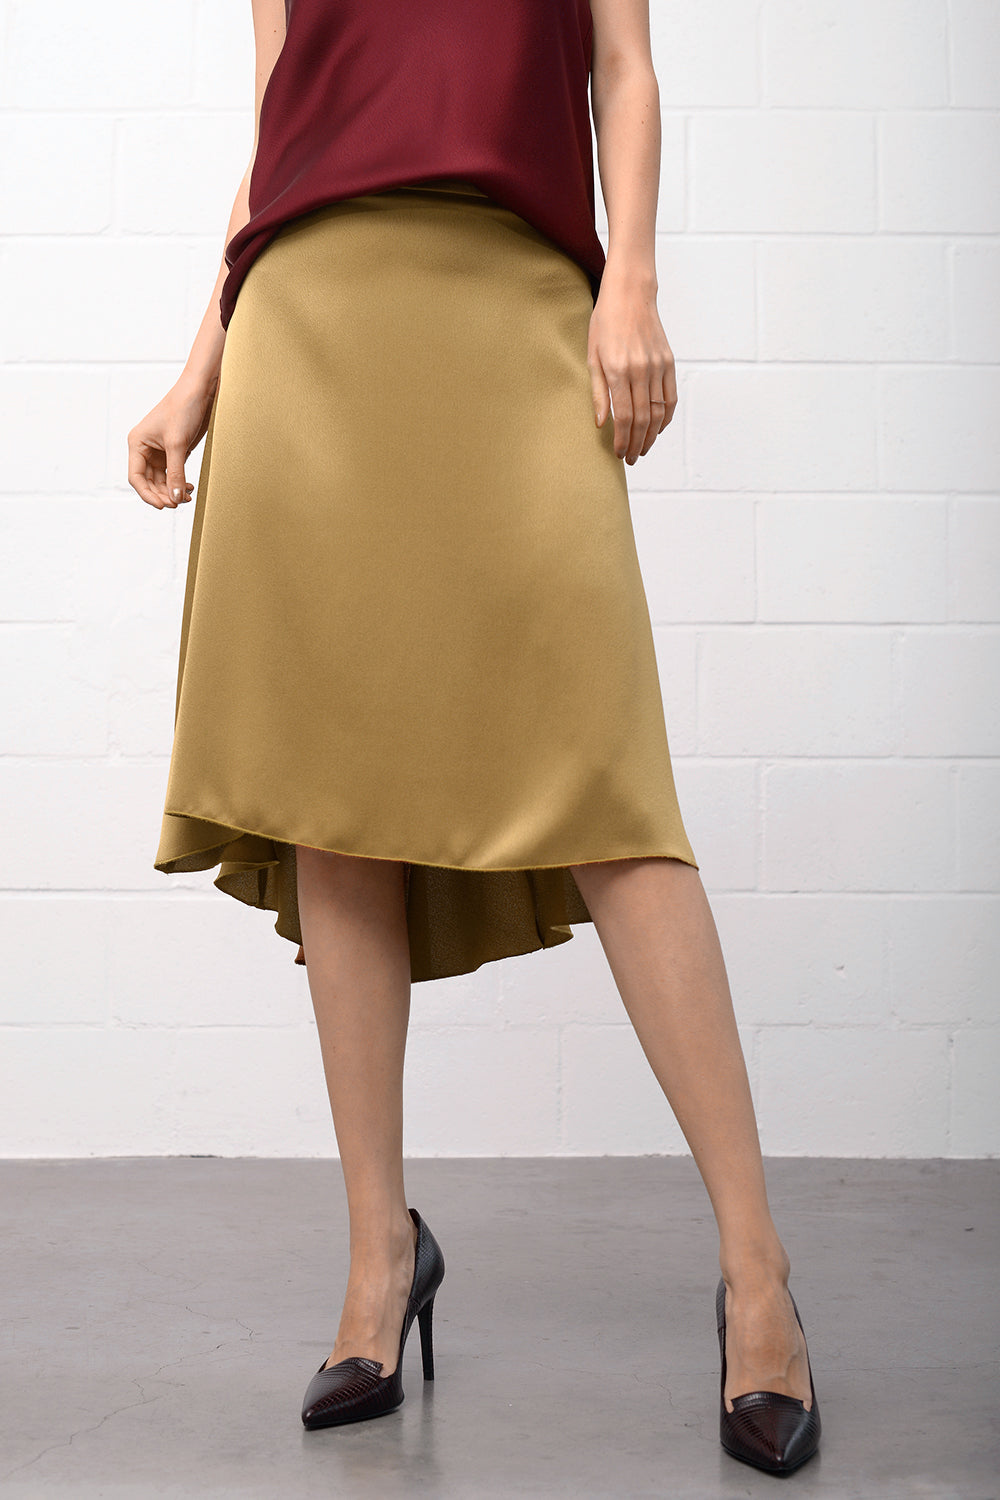 Ginella Skirt - oldgold